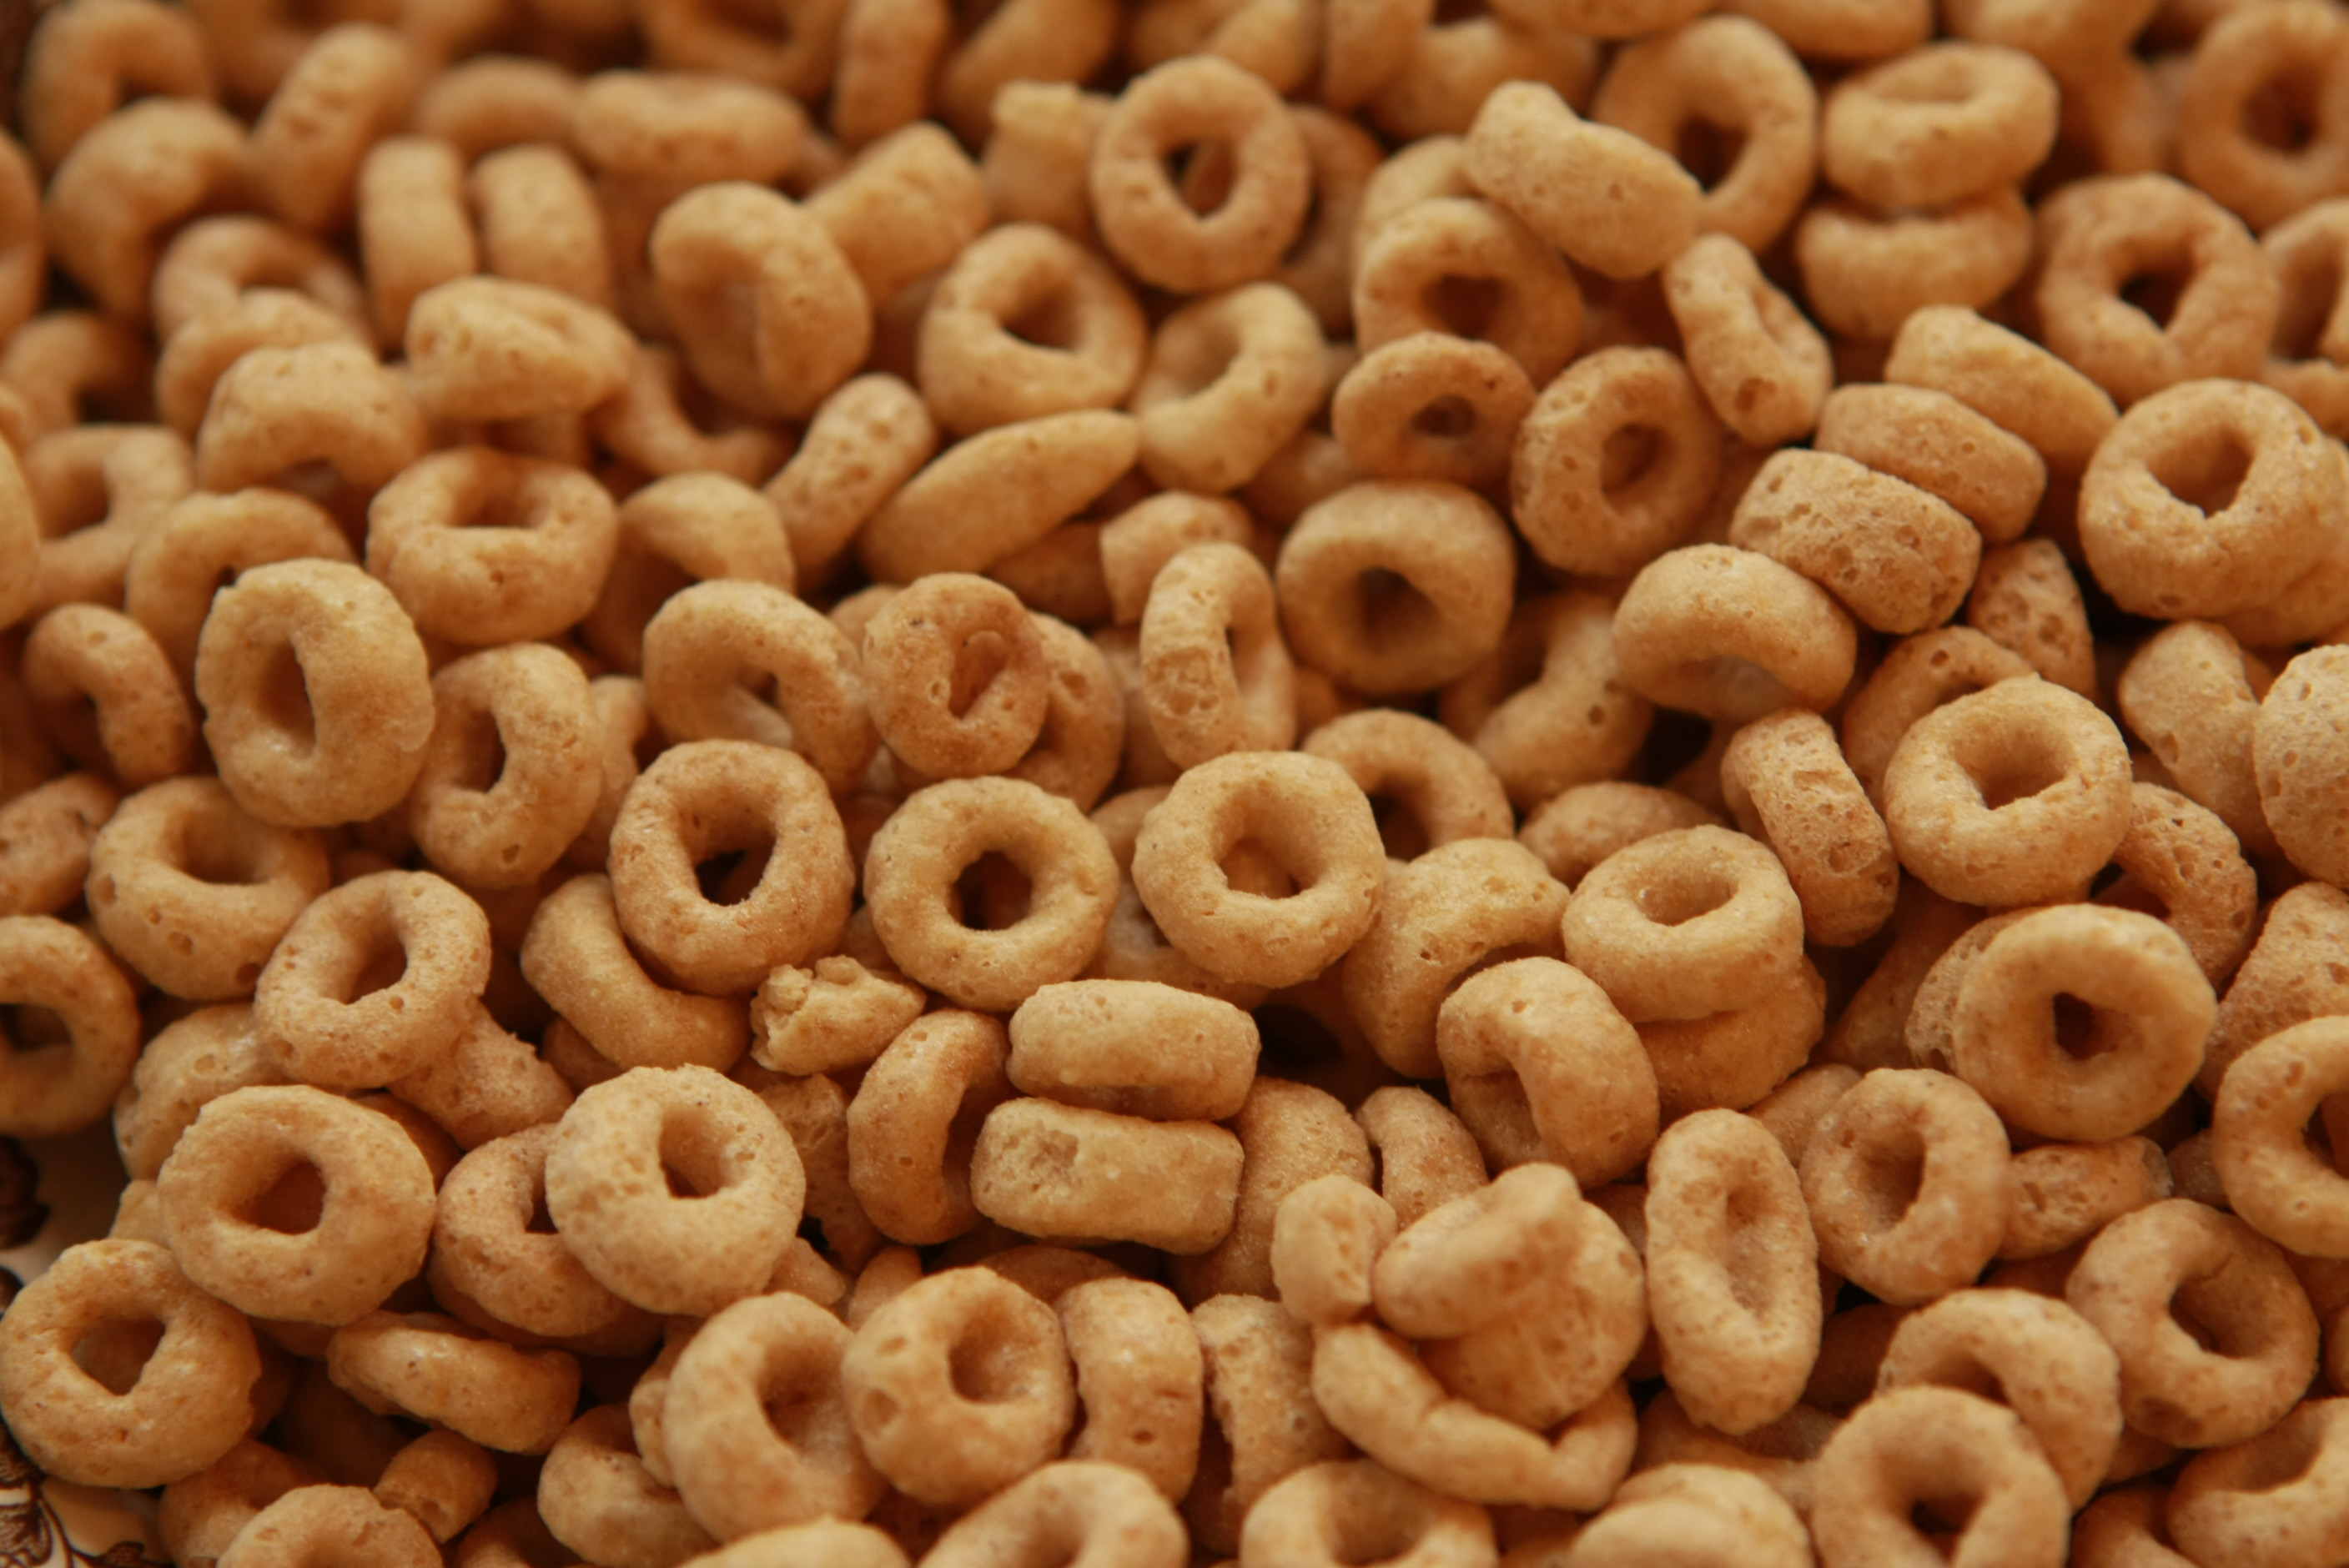 Cheerios A family favourite for over 70 years, Cheerios are made with percent natural whole grain oats. Its wholesome goodness is perfect for toddlers, adults and everyone in between.